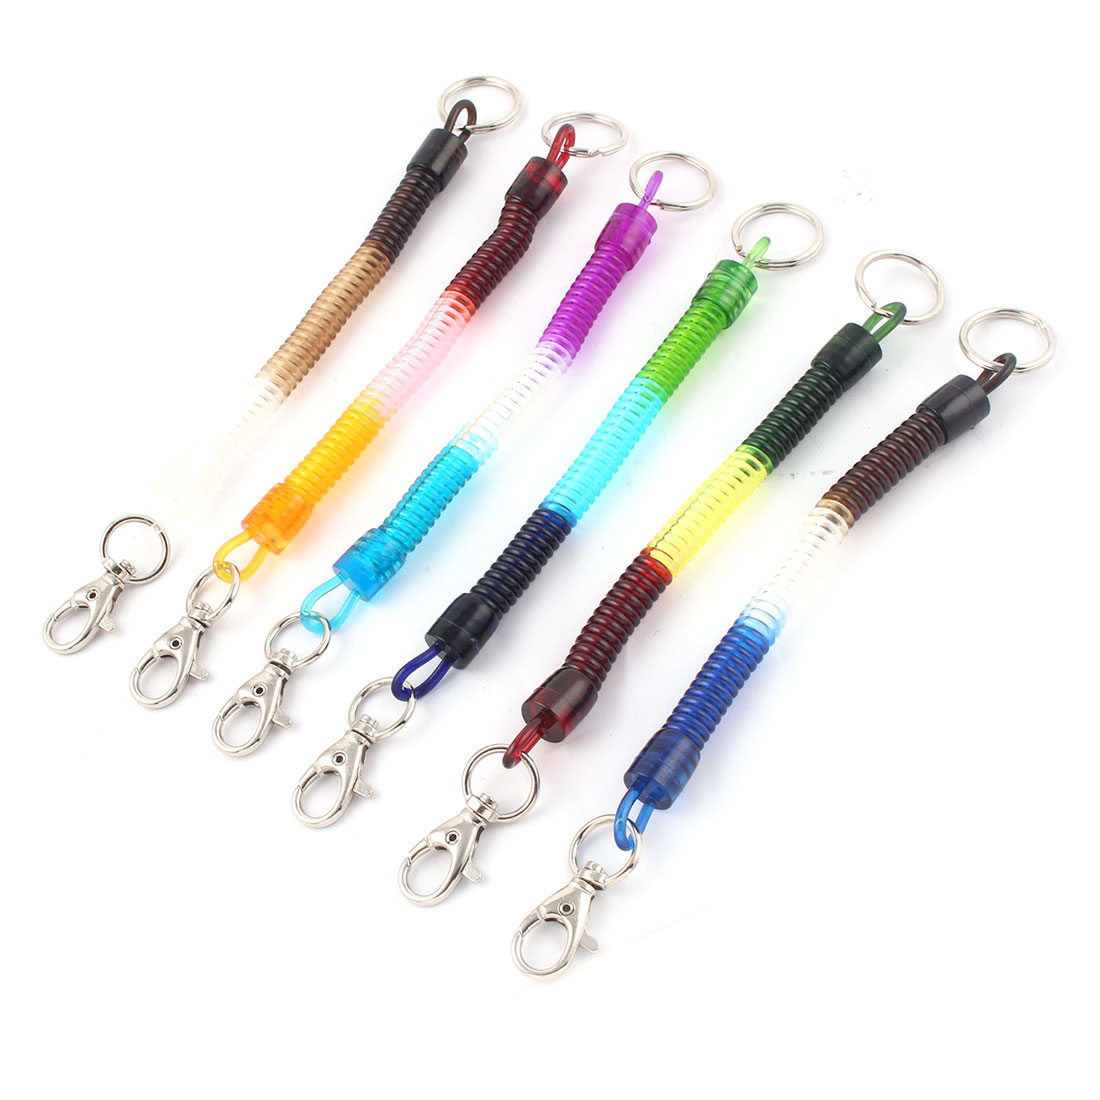 Bags Retractable Spiral Stretch Lanyard Wrist Coil Keyrings Key Chain 6pcs